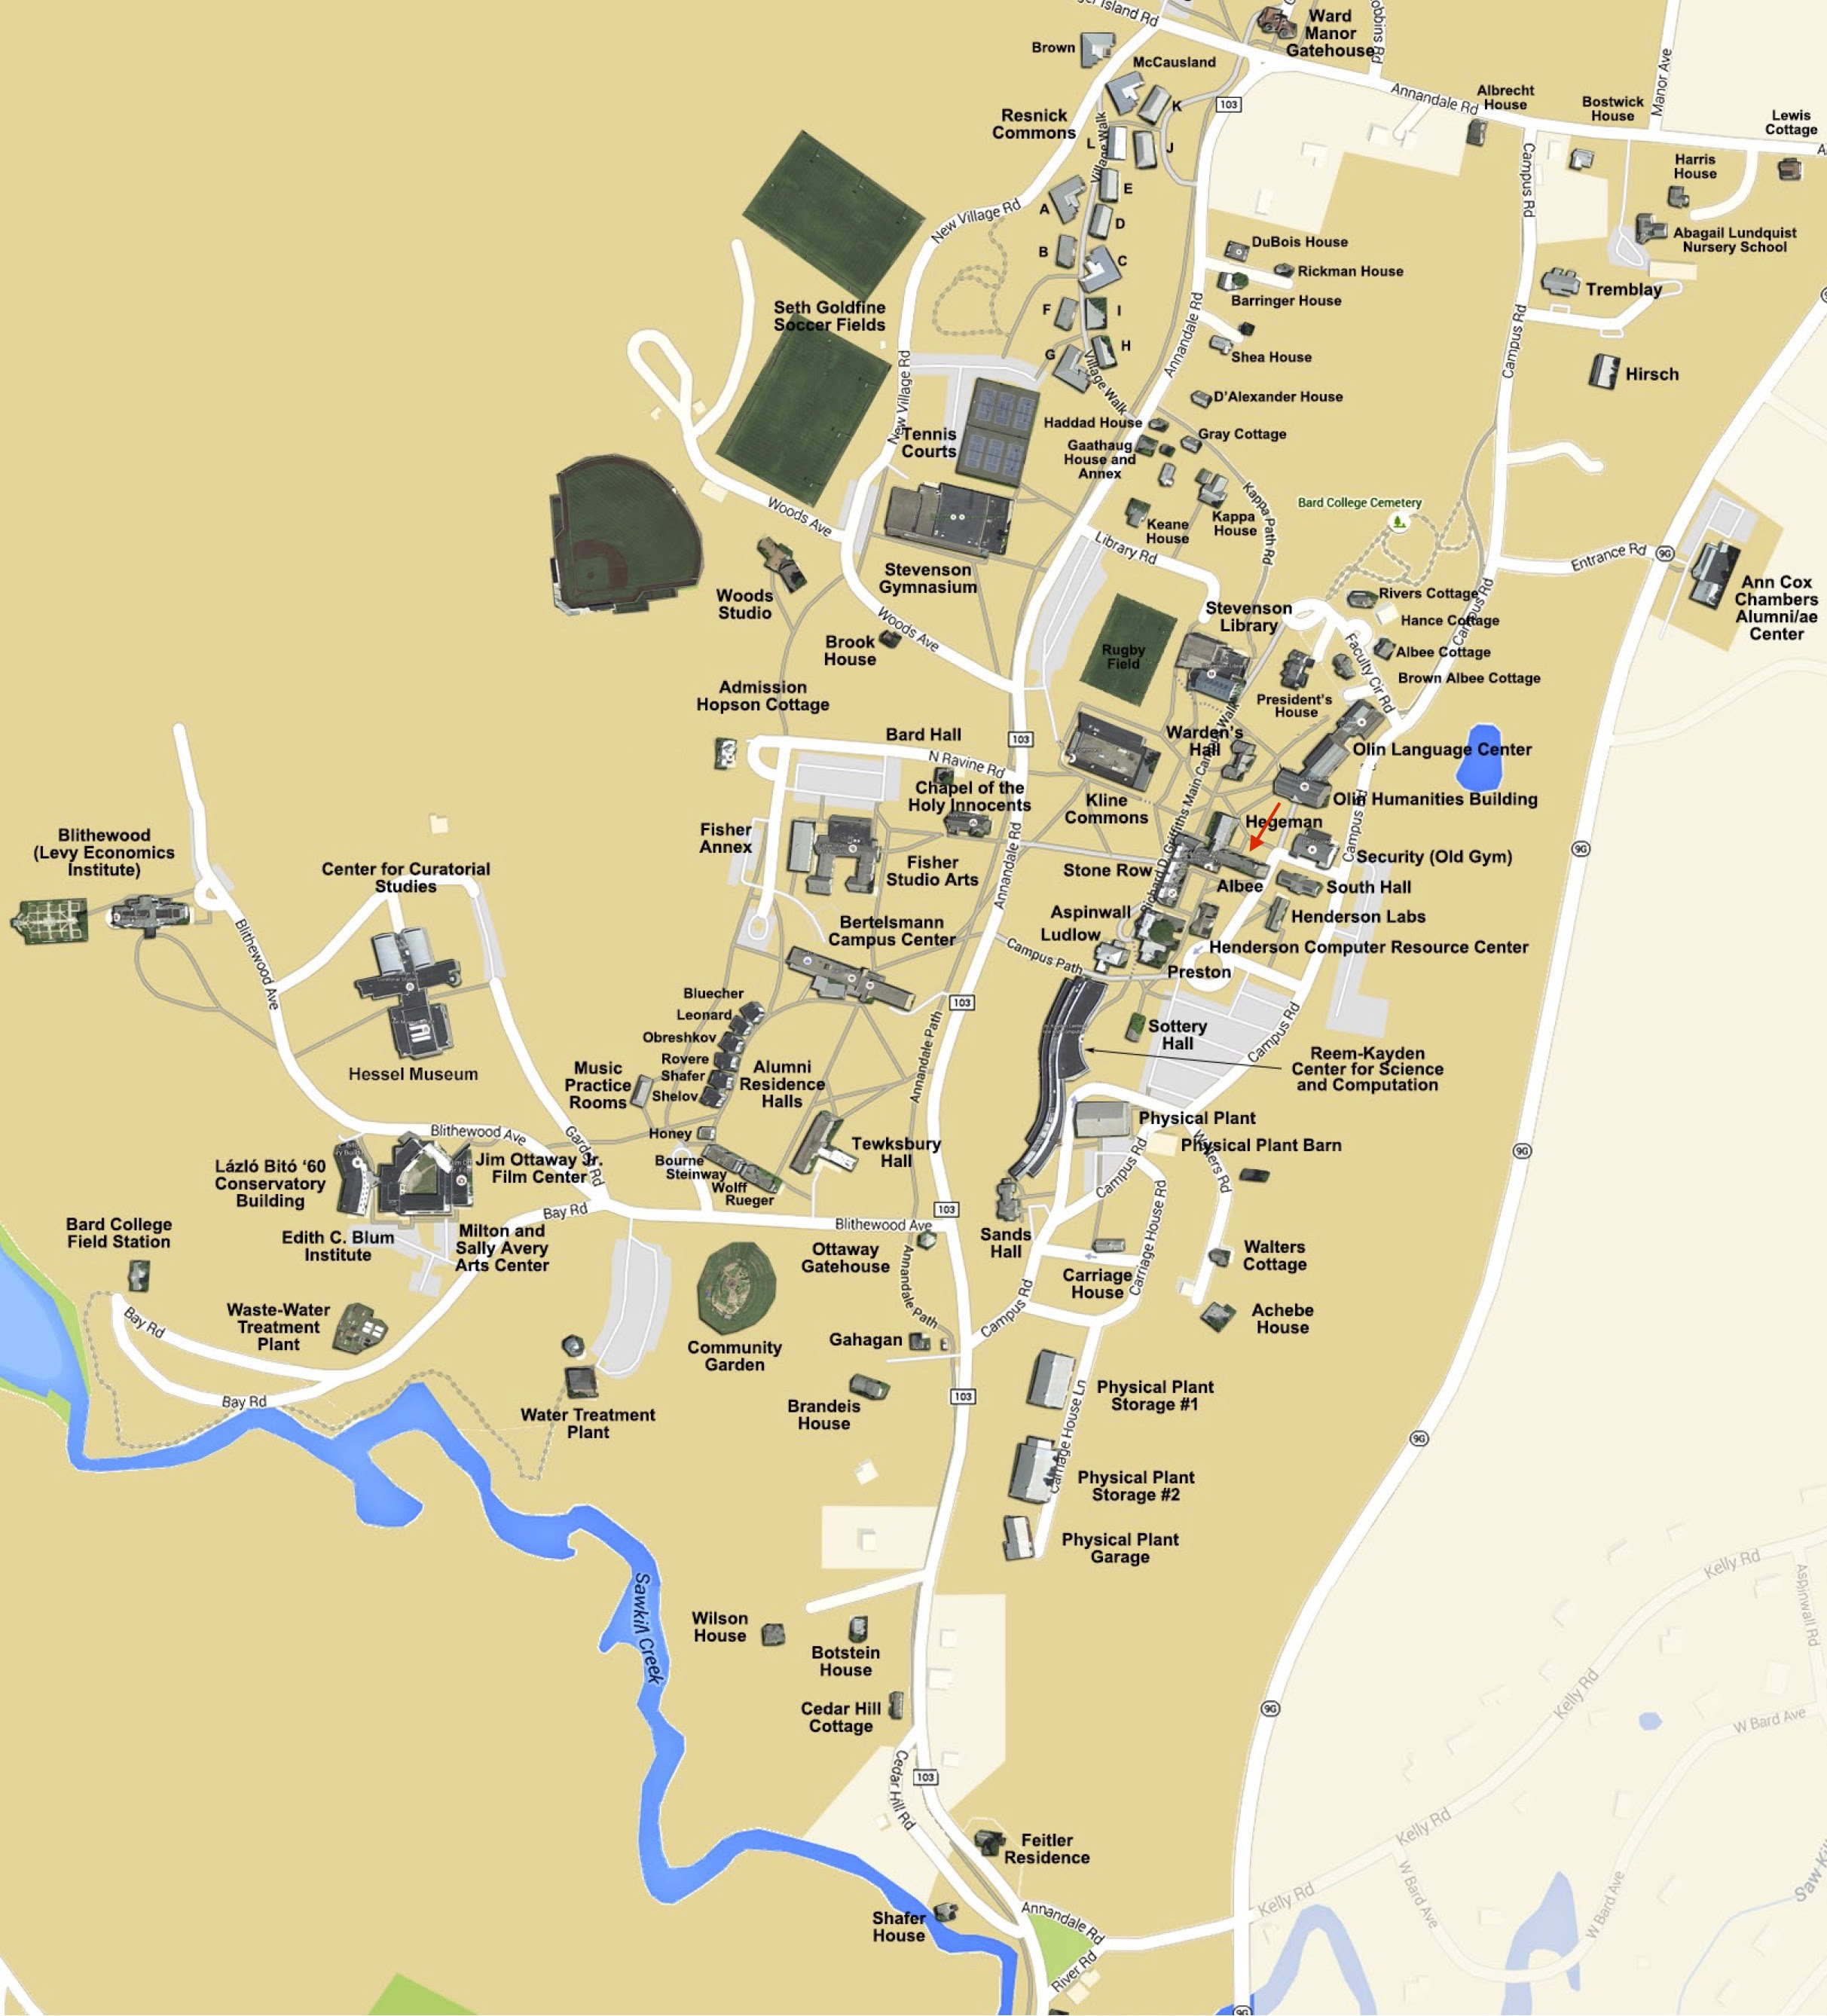 Bard College Campus Map | Earth Map